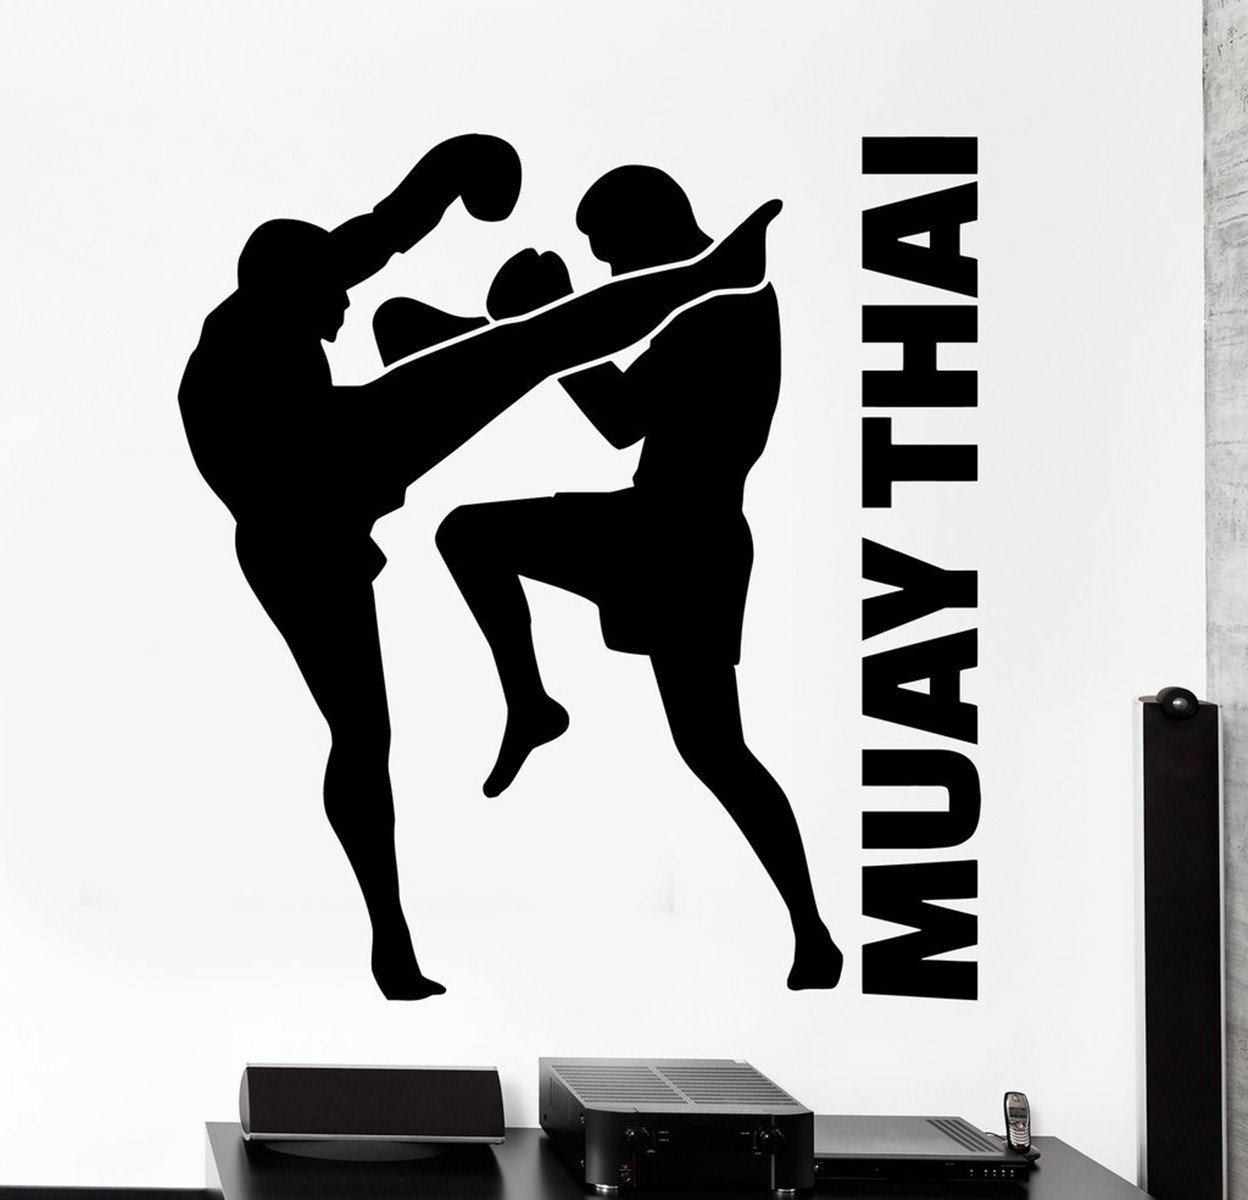 BorisMotley Wall Decal Sport Fighters Muay Thai Vinyl Removable Mural Art Decoration Stickers for Home Bedroom Nursery Living Room Kitchen by BorisMotley